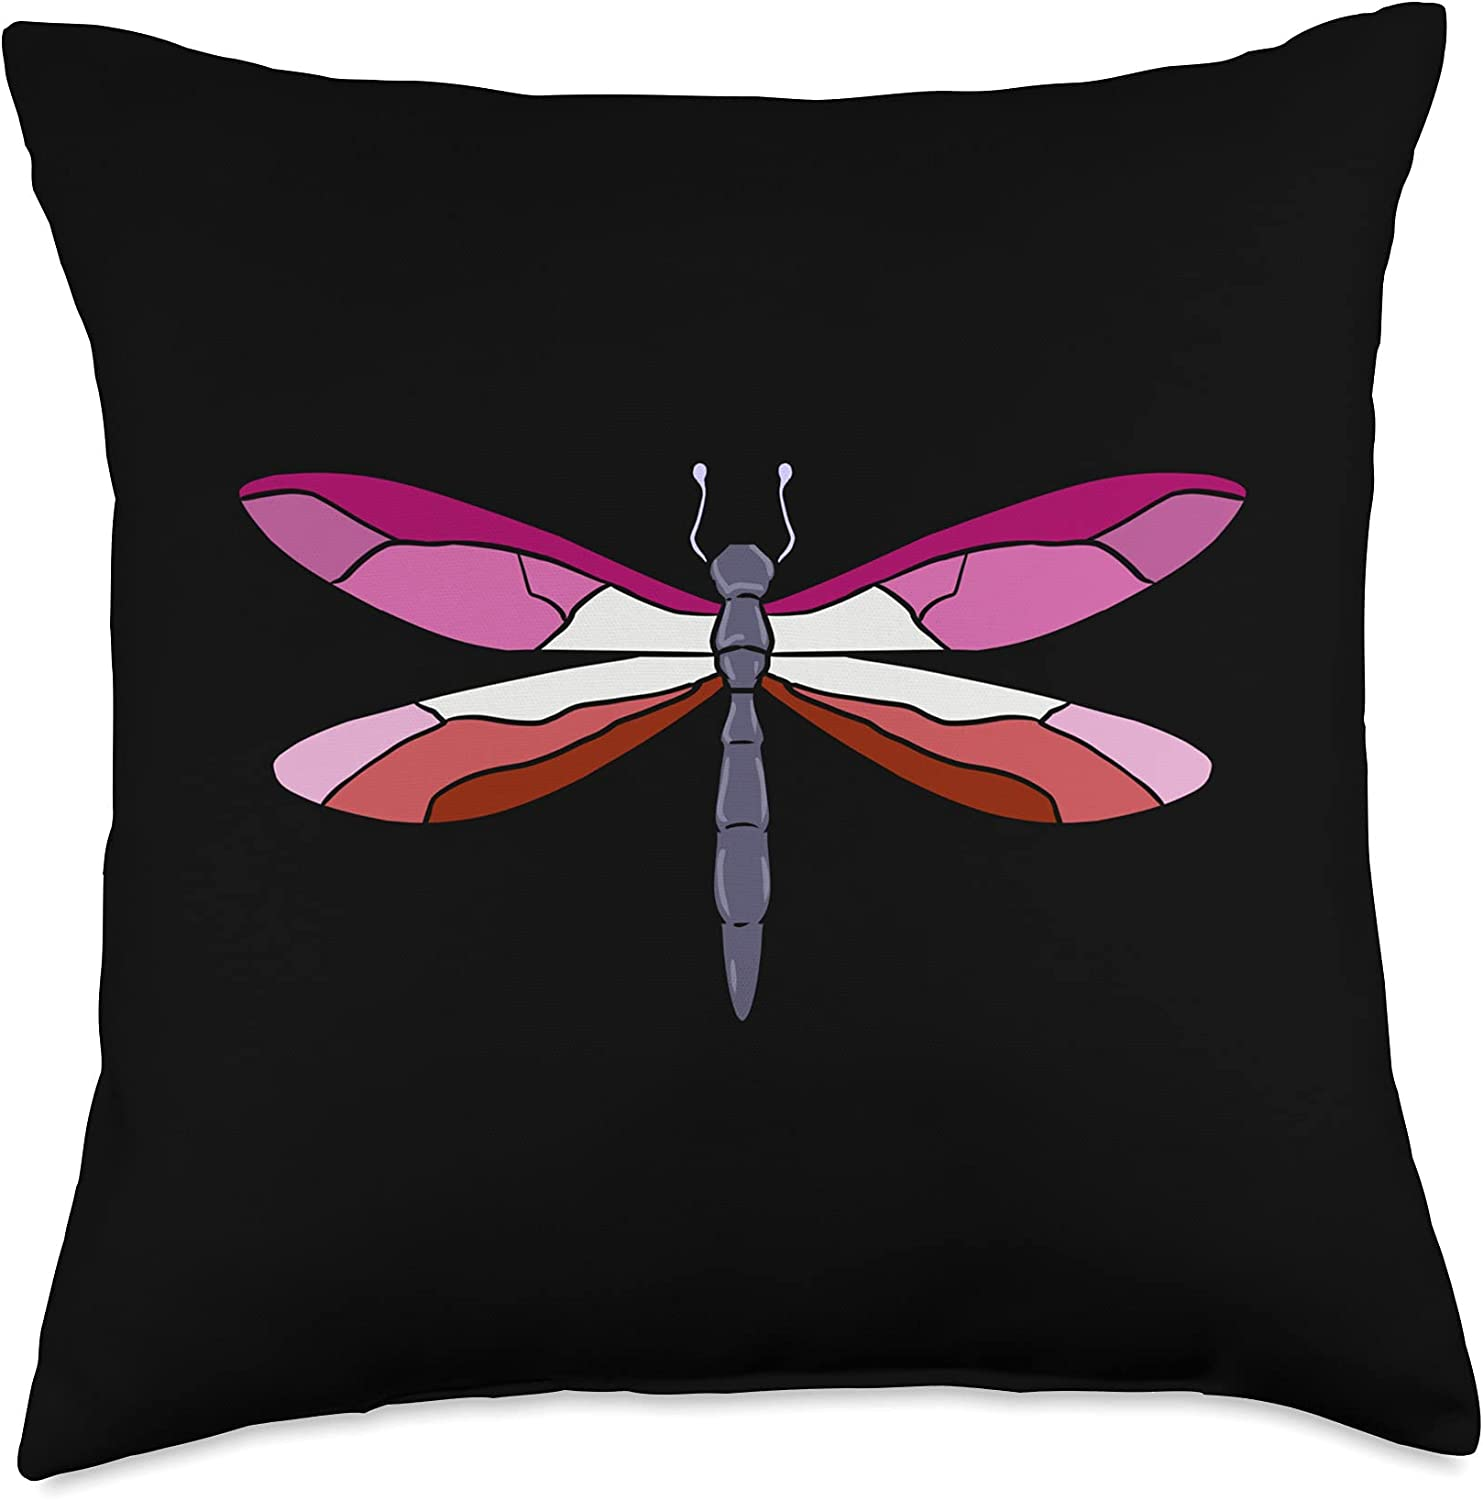 Lesbian Pride Dragonfly Throw Multicolor 18x18 Pillow Columbus Mall